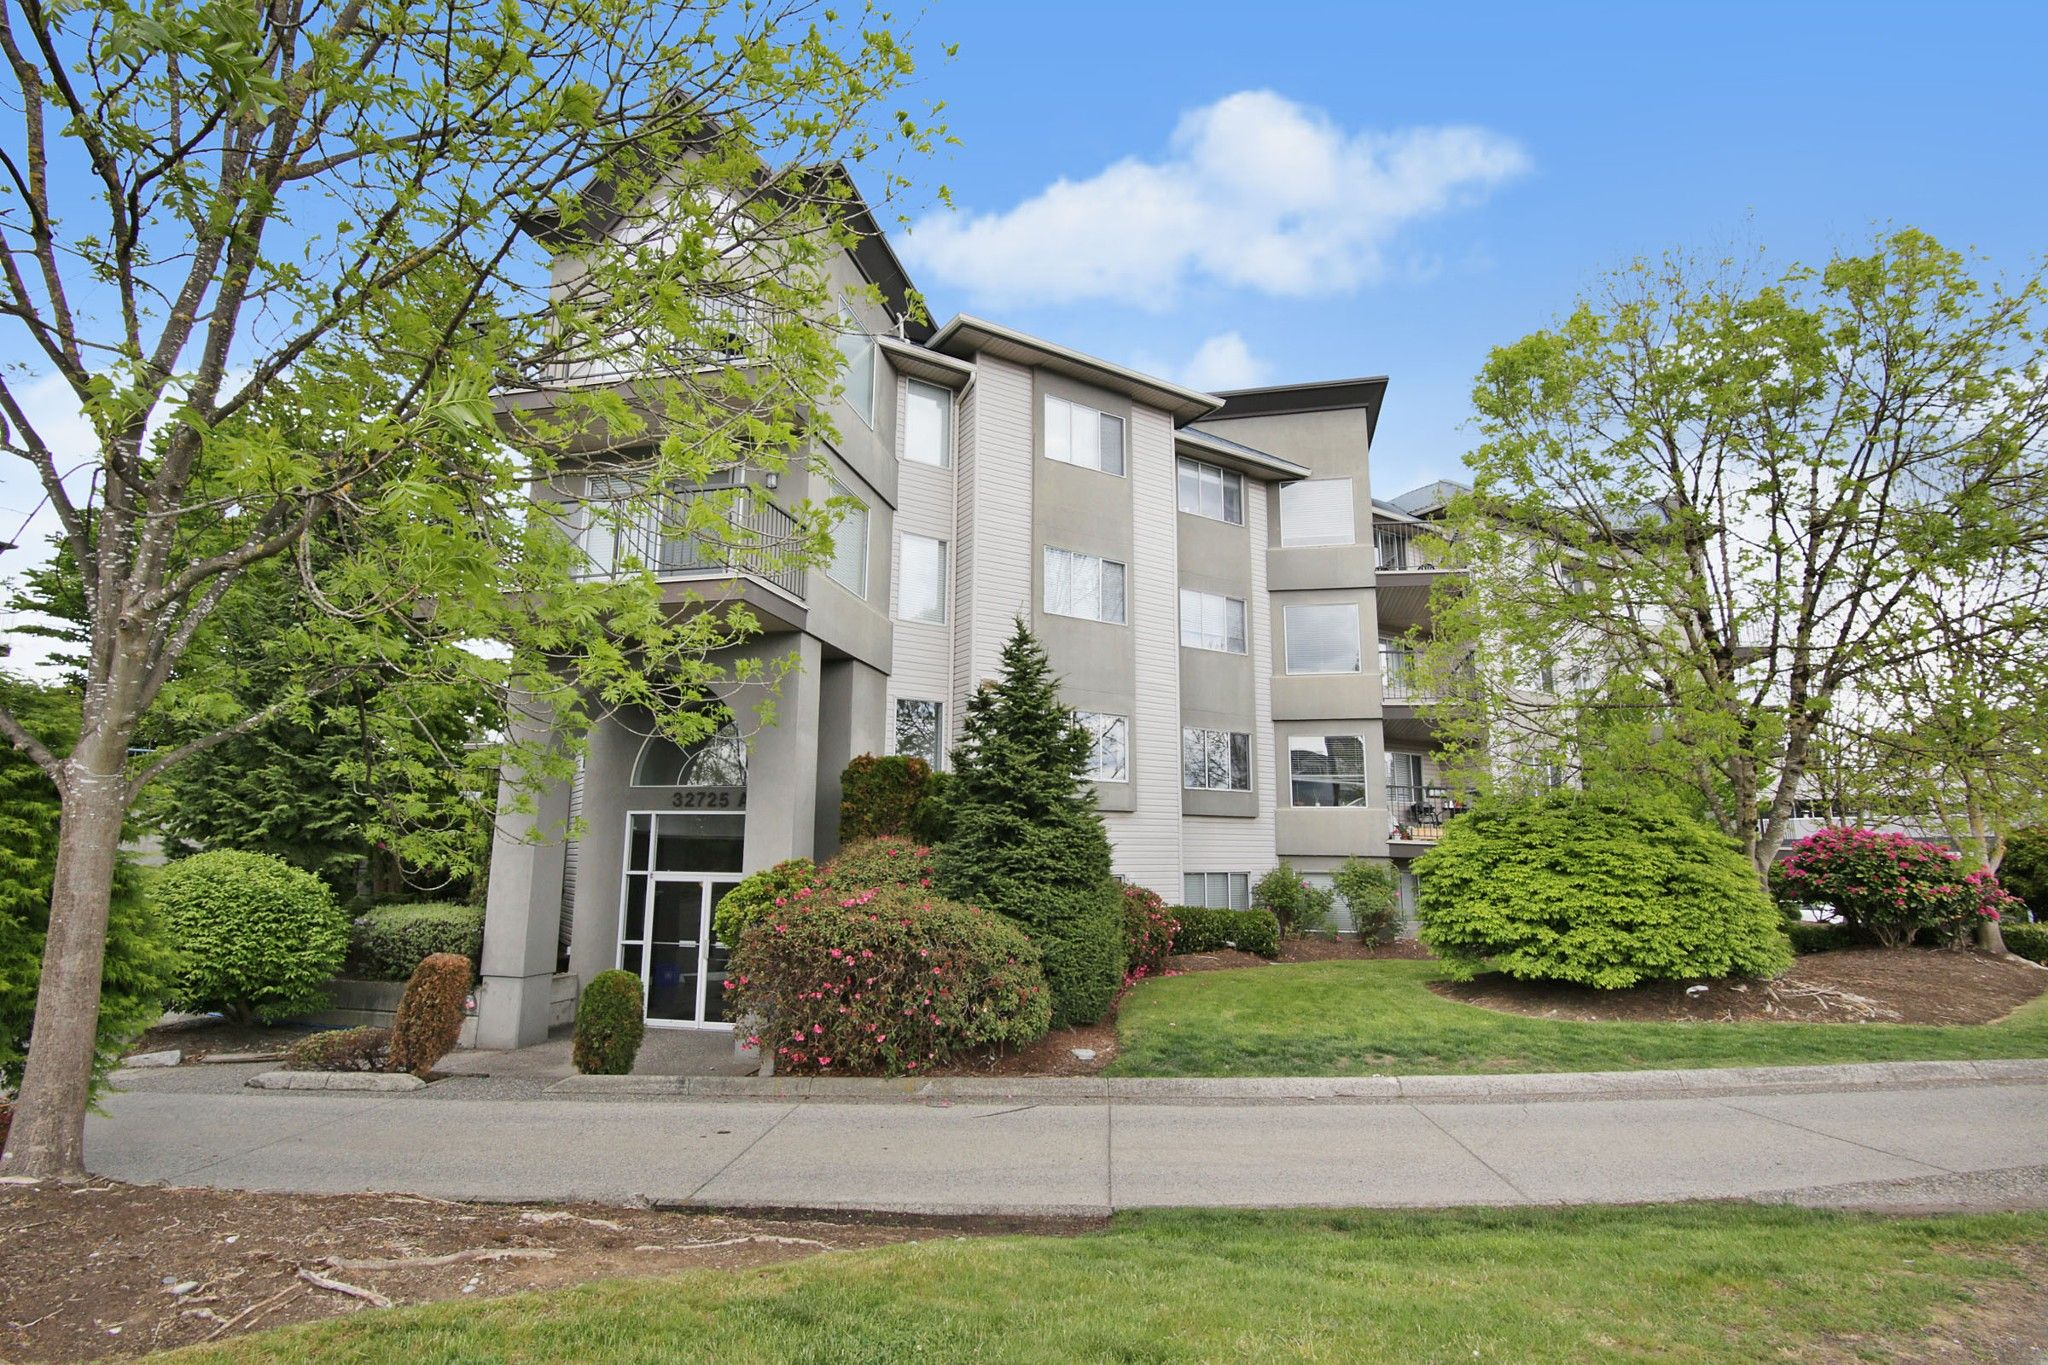 """Main Photo: 303 32725 GEORGE FERGUSON Way in Abbotsford: Abbotsford West Condo for sale in """"THE UPTOWN"""" : MLS®# R2578786"""